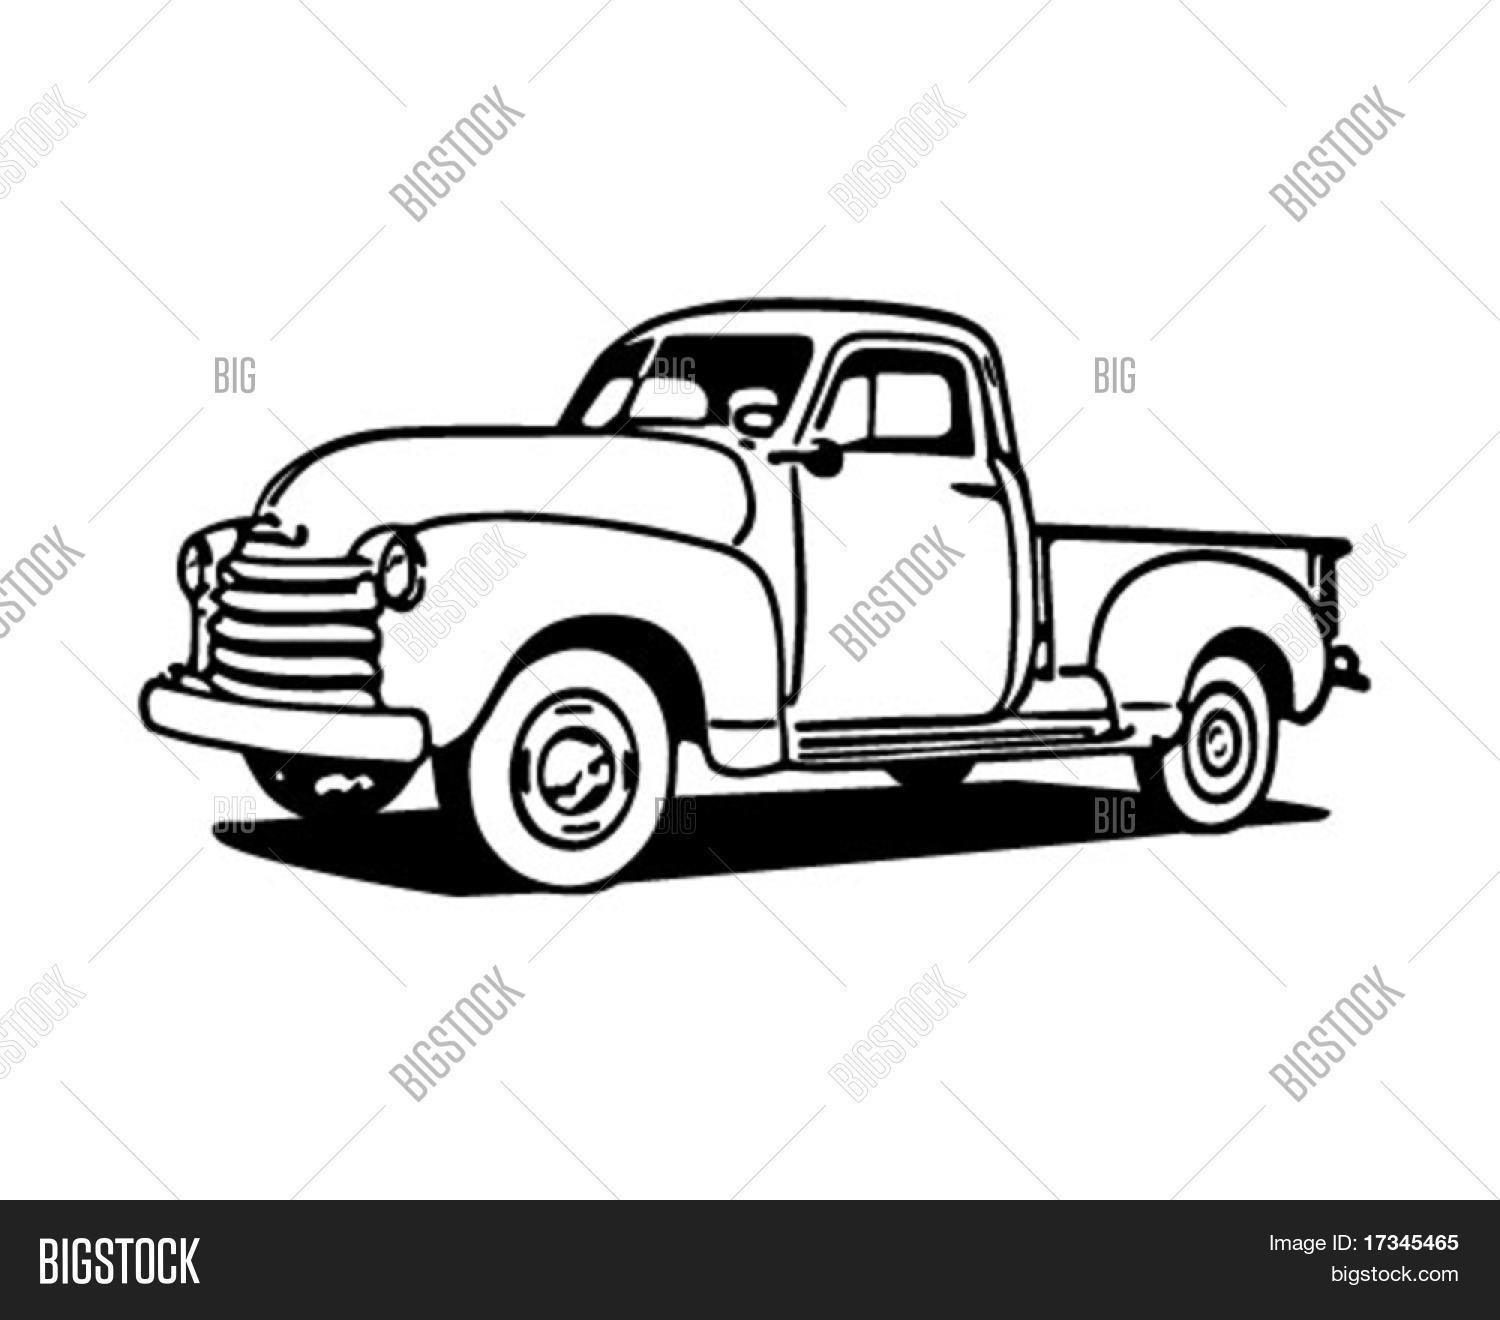 Old Truck Drawing at GetDrawings.com | Free for personal use Old ...